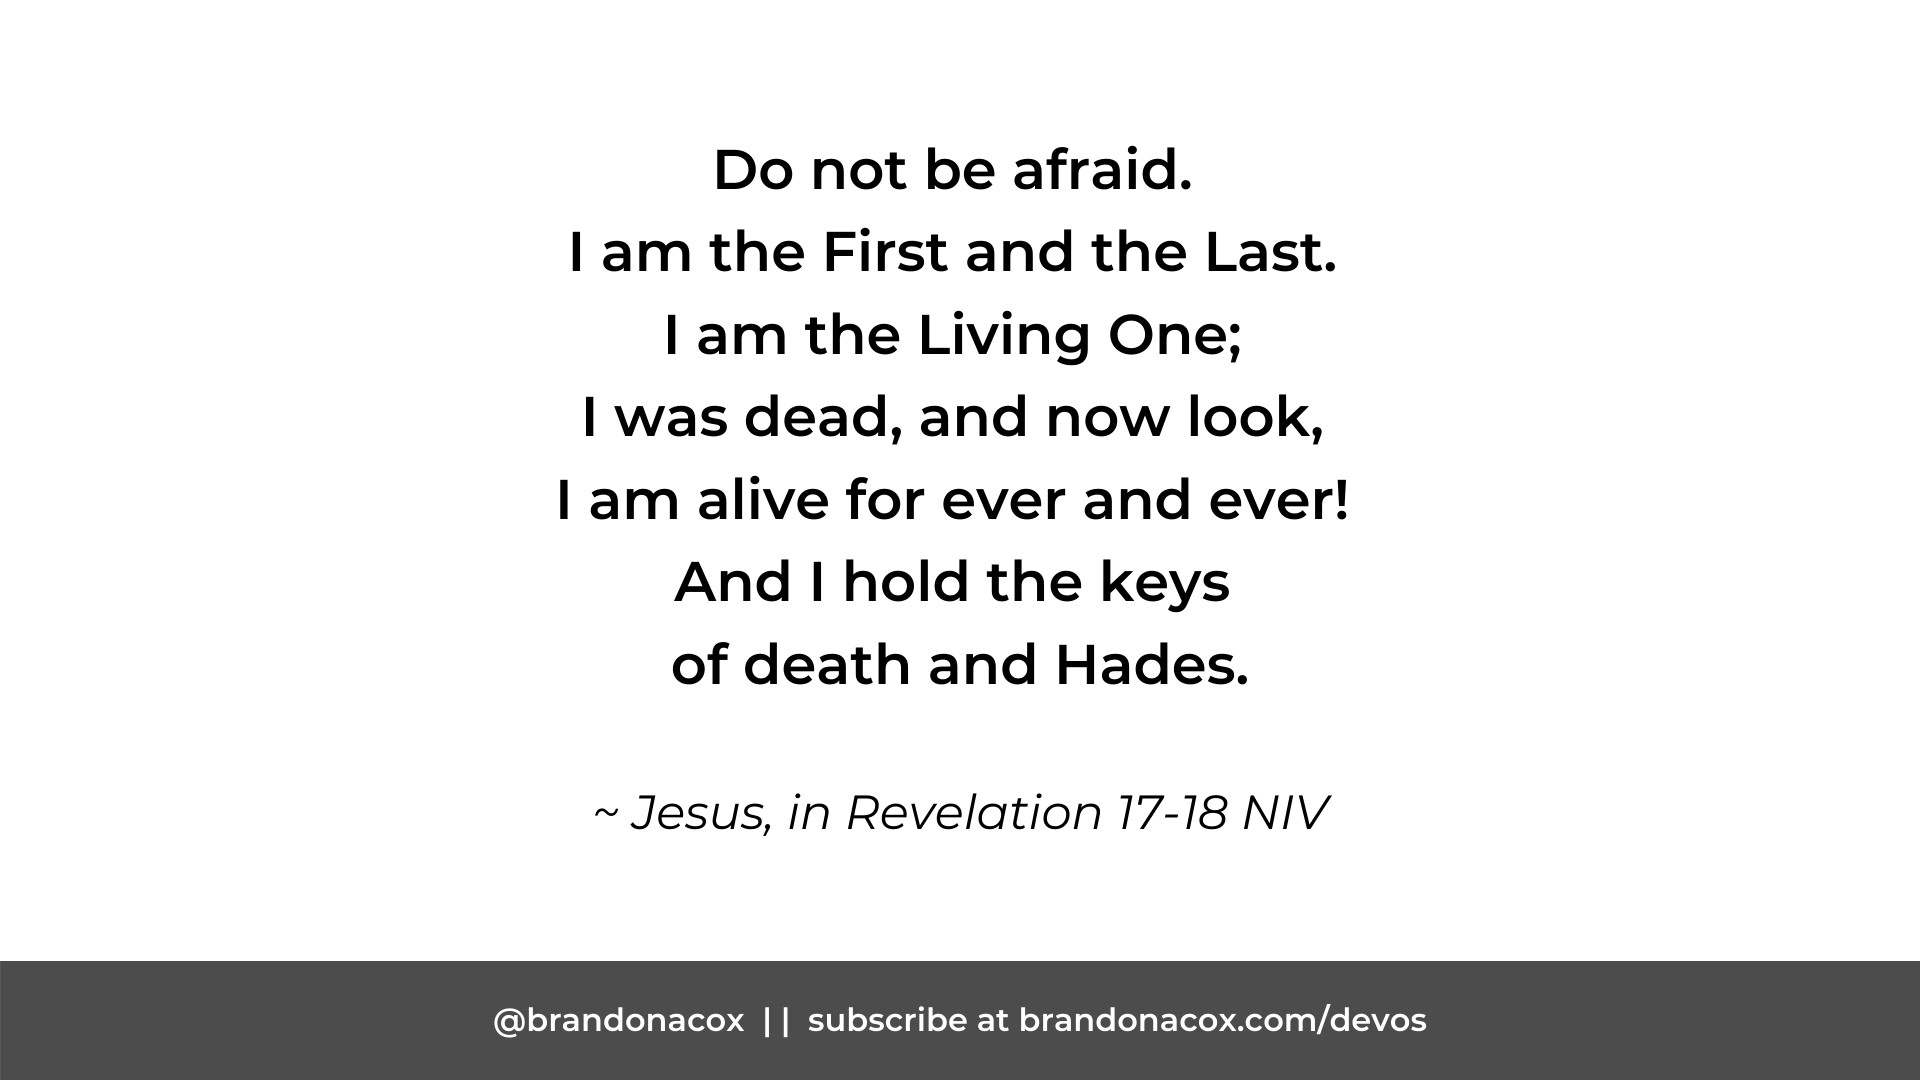 Jesus, the First and the Last